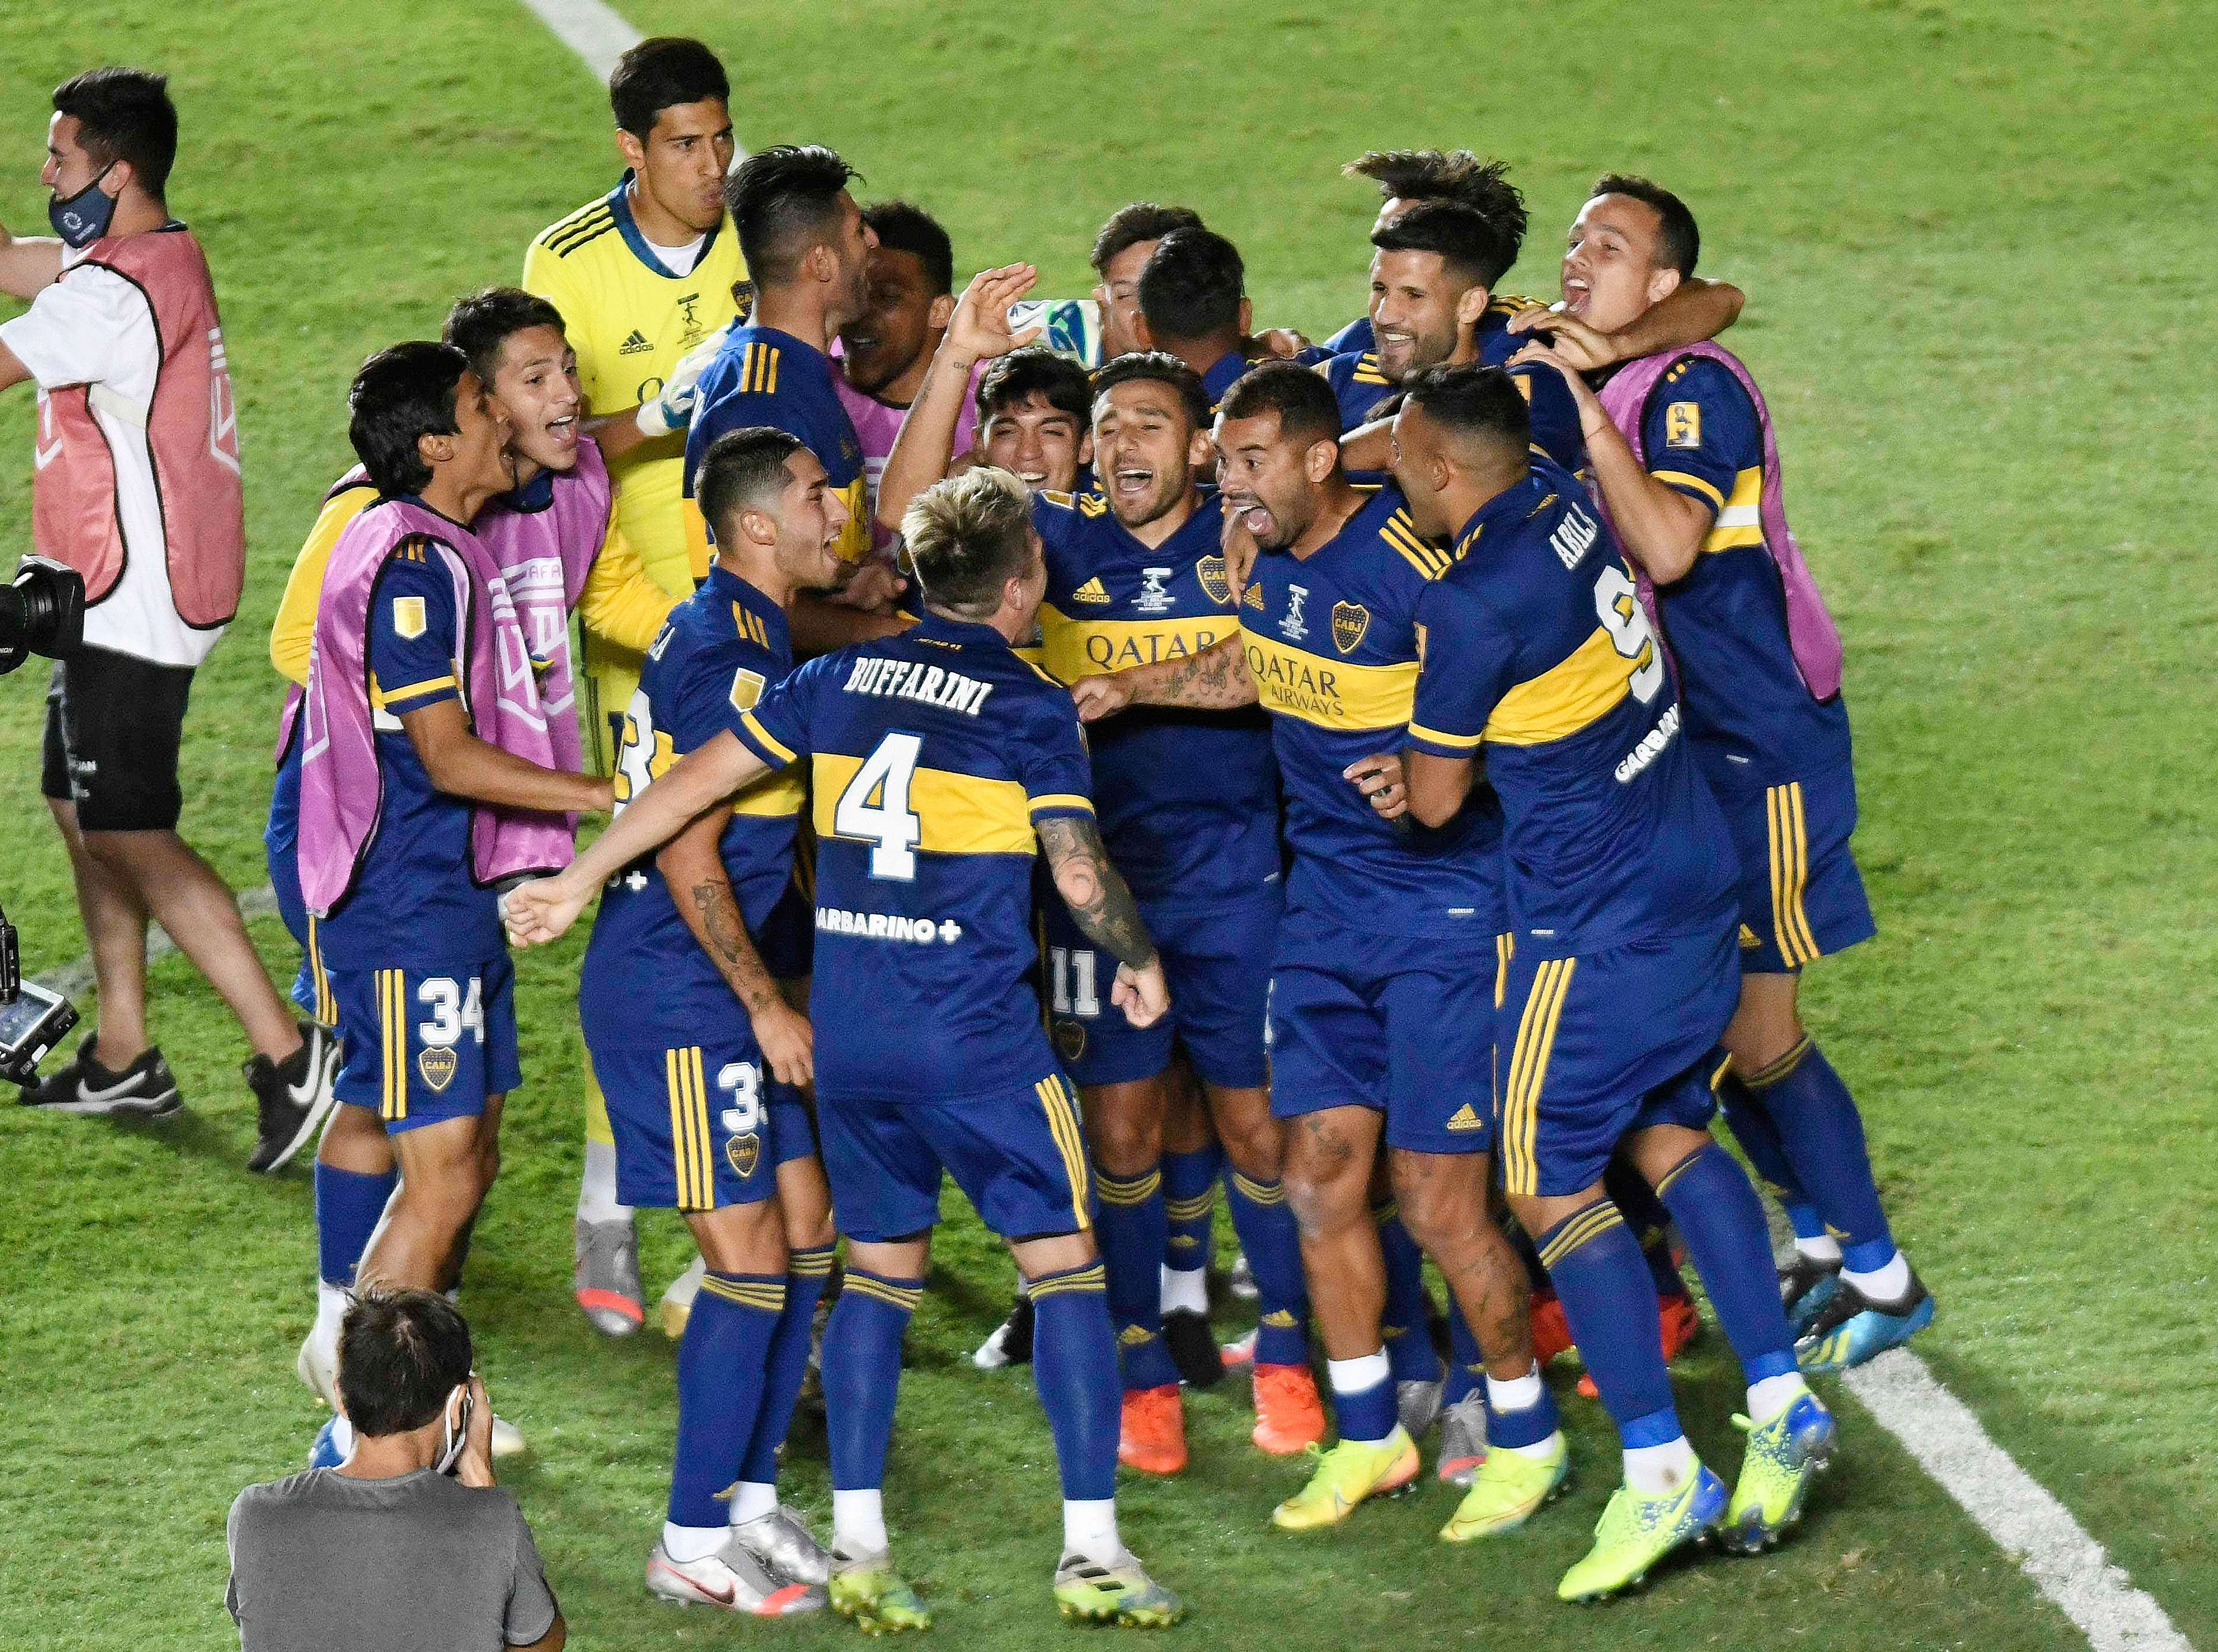 With this title, Boca beat Racing (14-13) and became the team that won the most National Cups